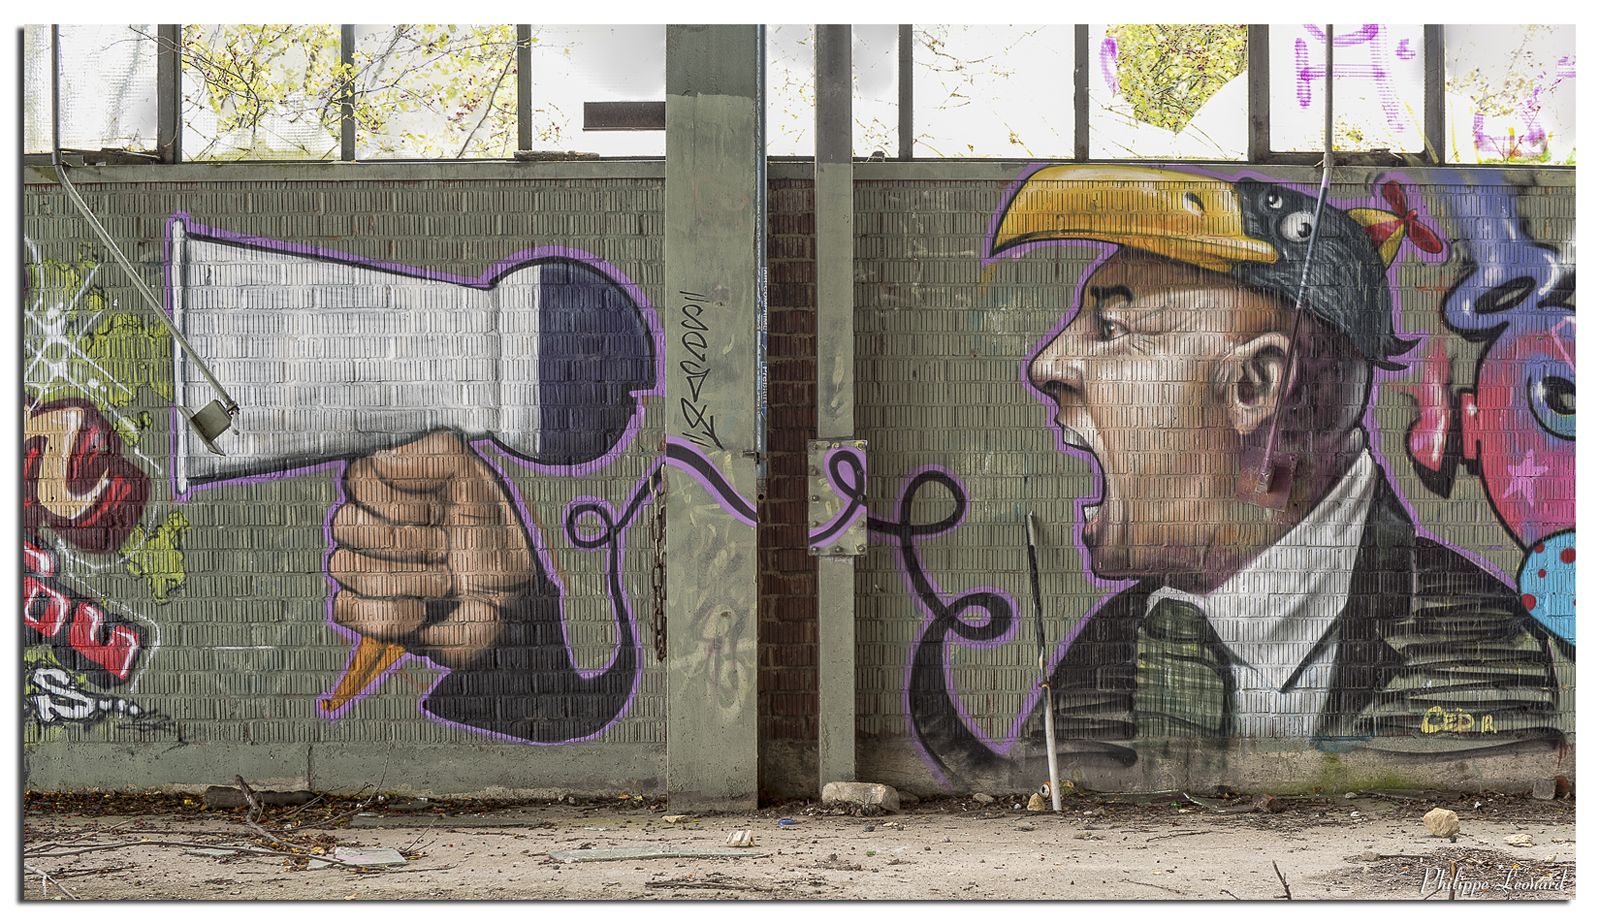 graffiti-factory-07 - Copie